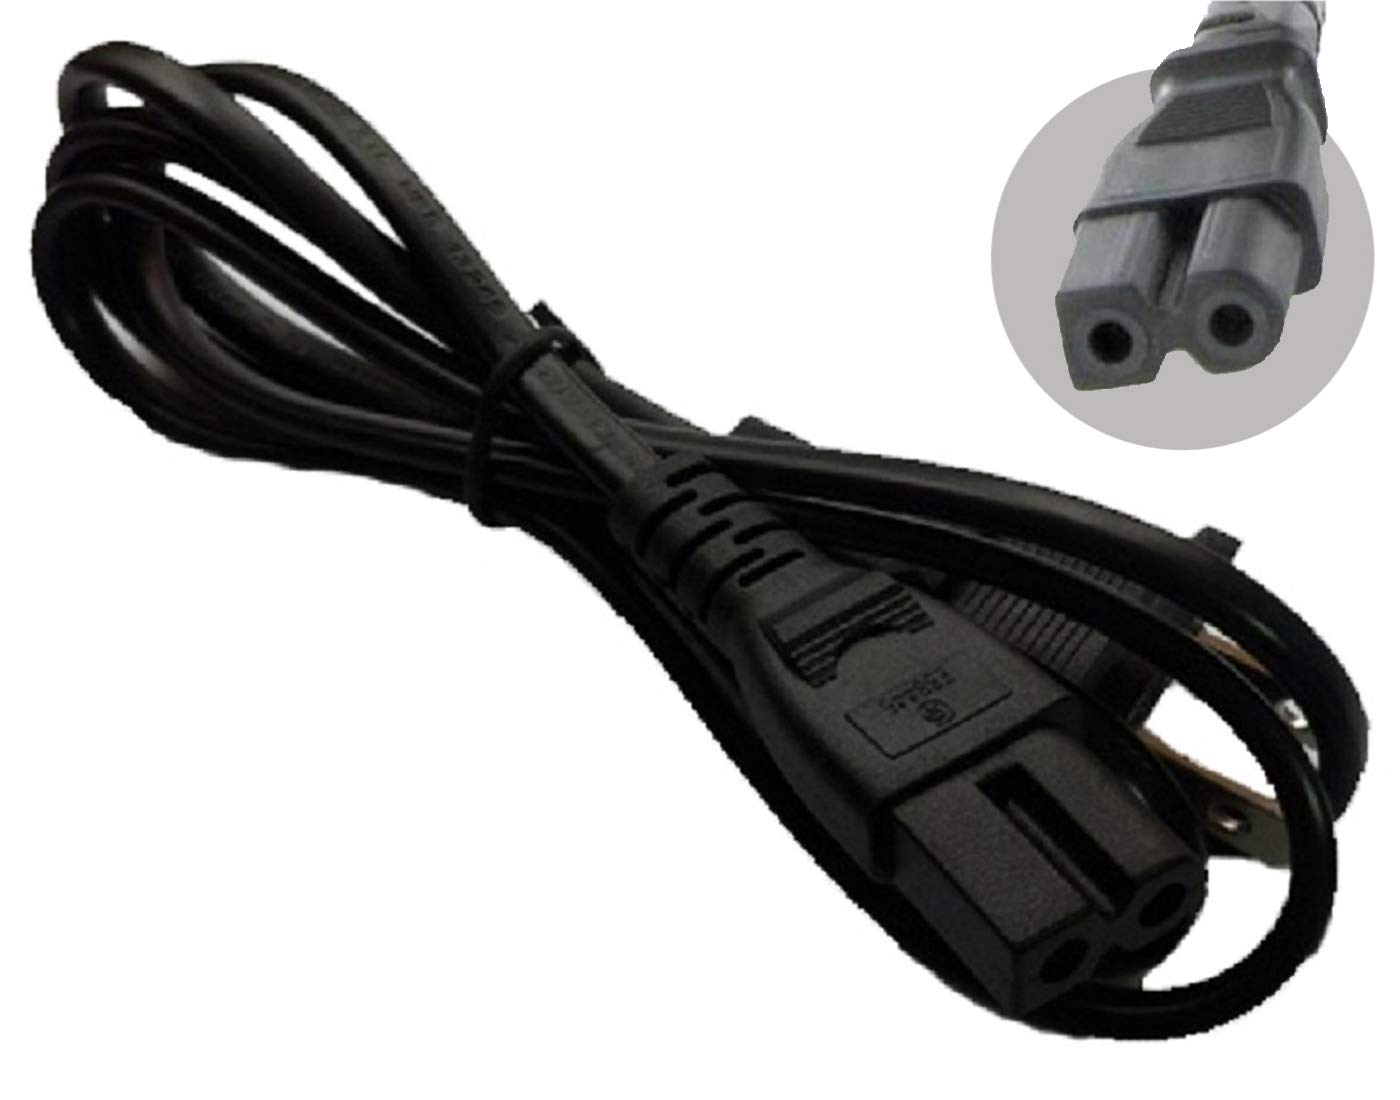 LOT OF 2 AC POWER CORD for Comcast Cable box Directv Dish DVR 6'